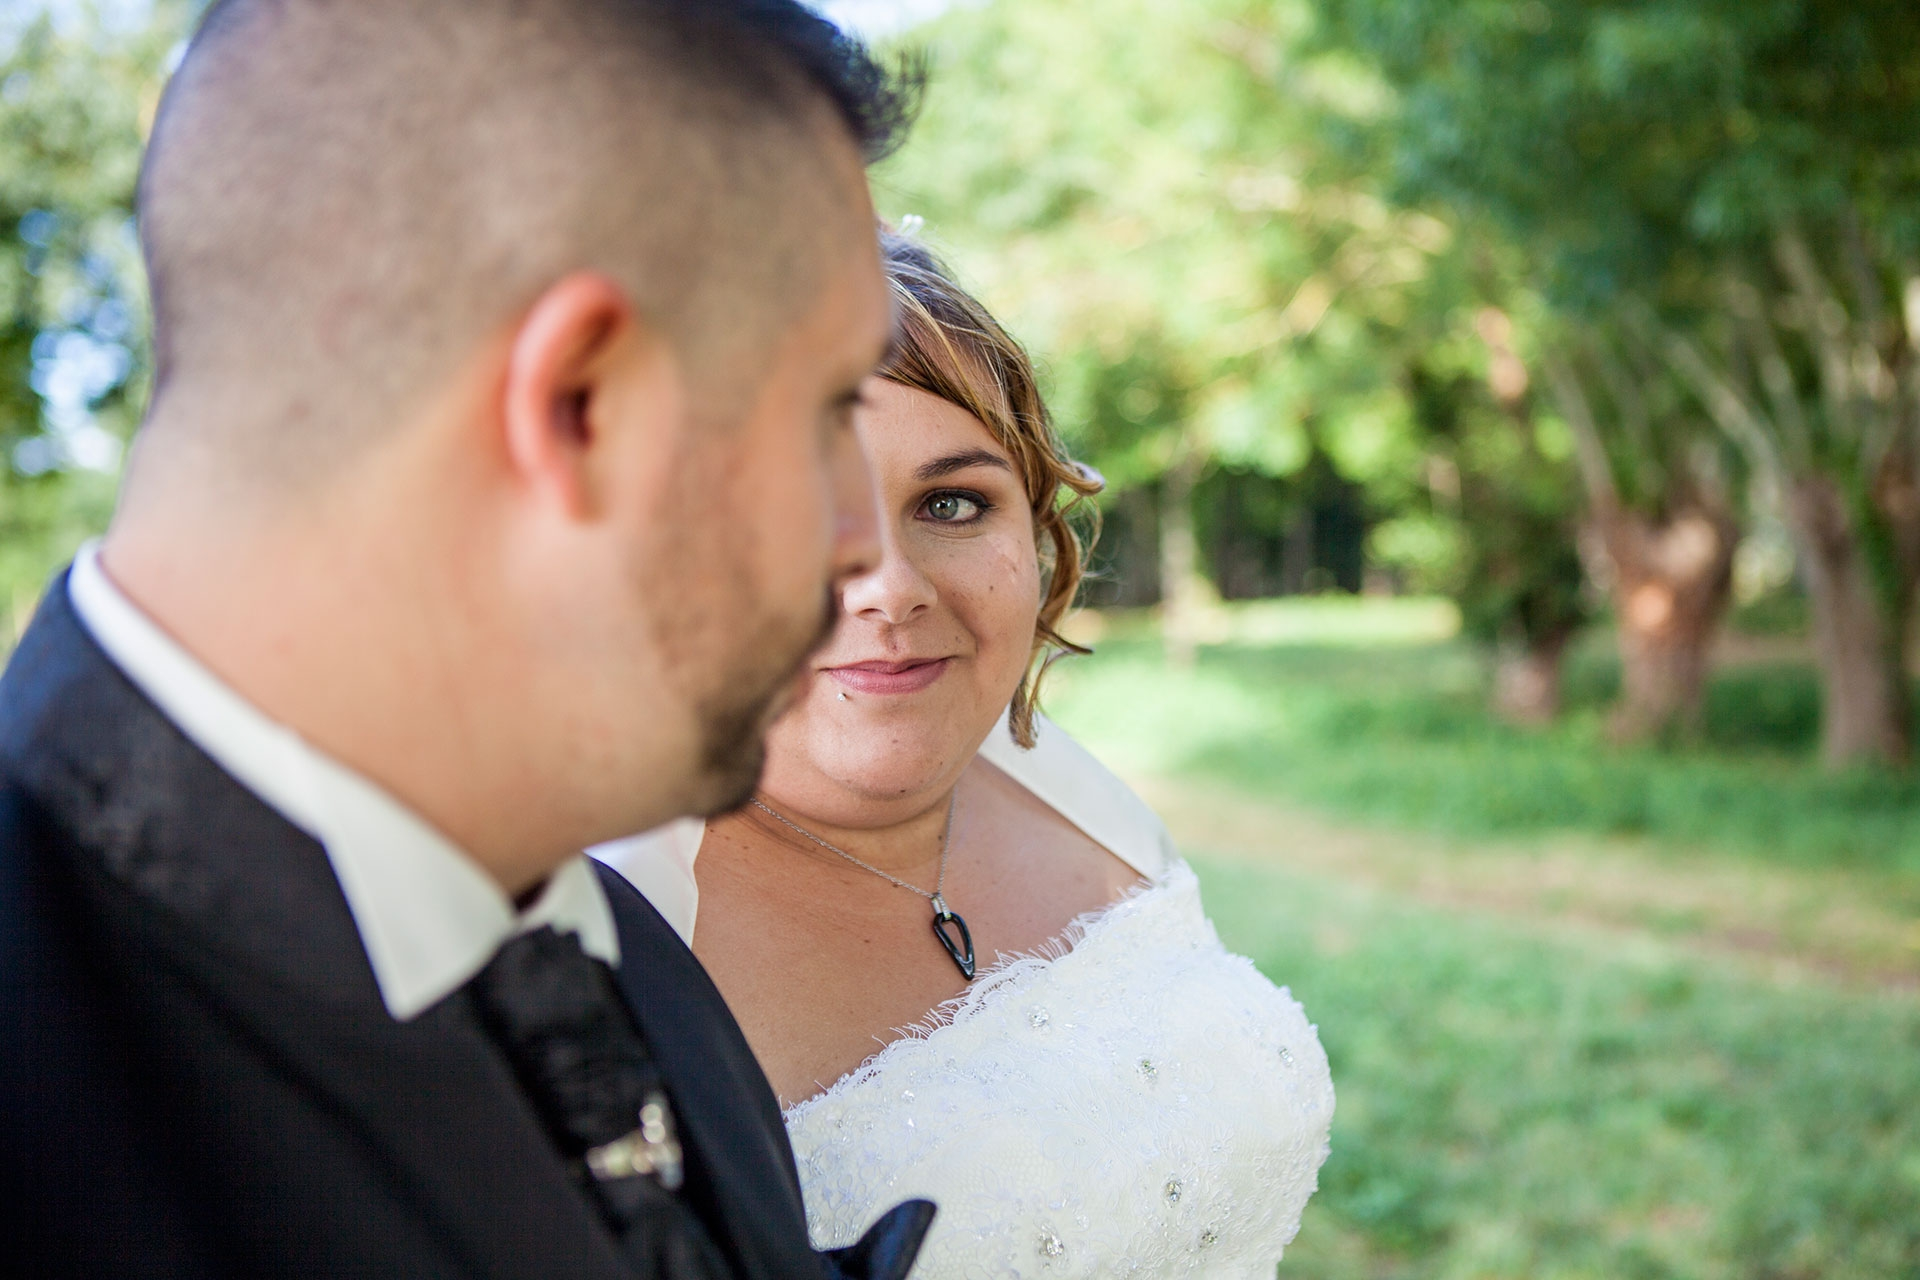 particuliers-evenements-mariages-oui-elodie&wilson-21